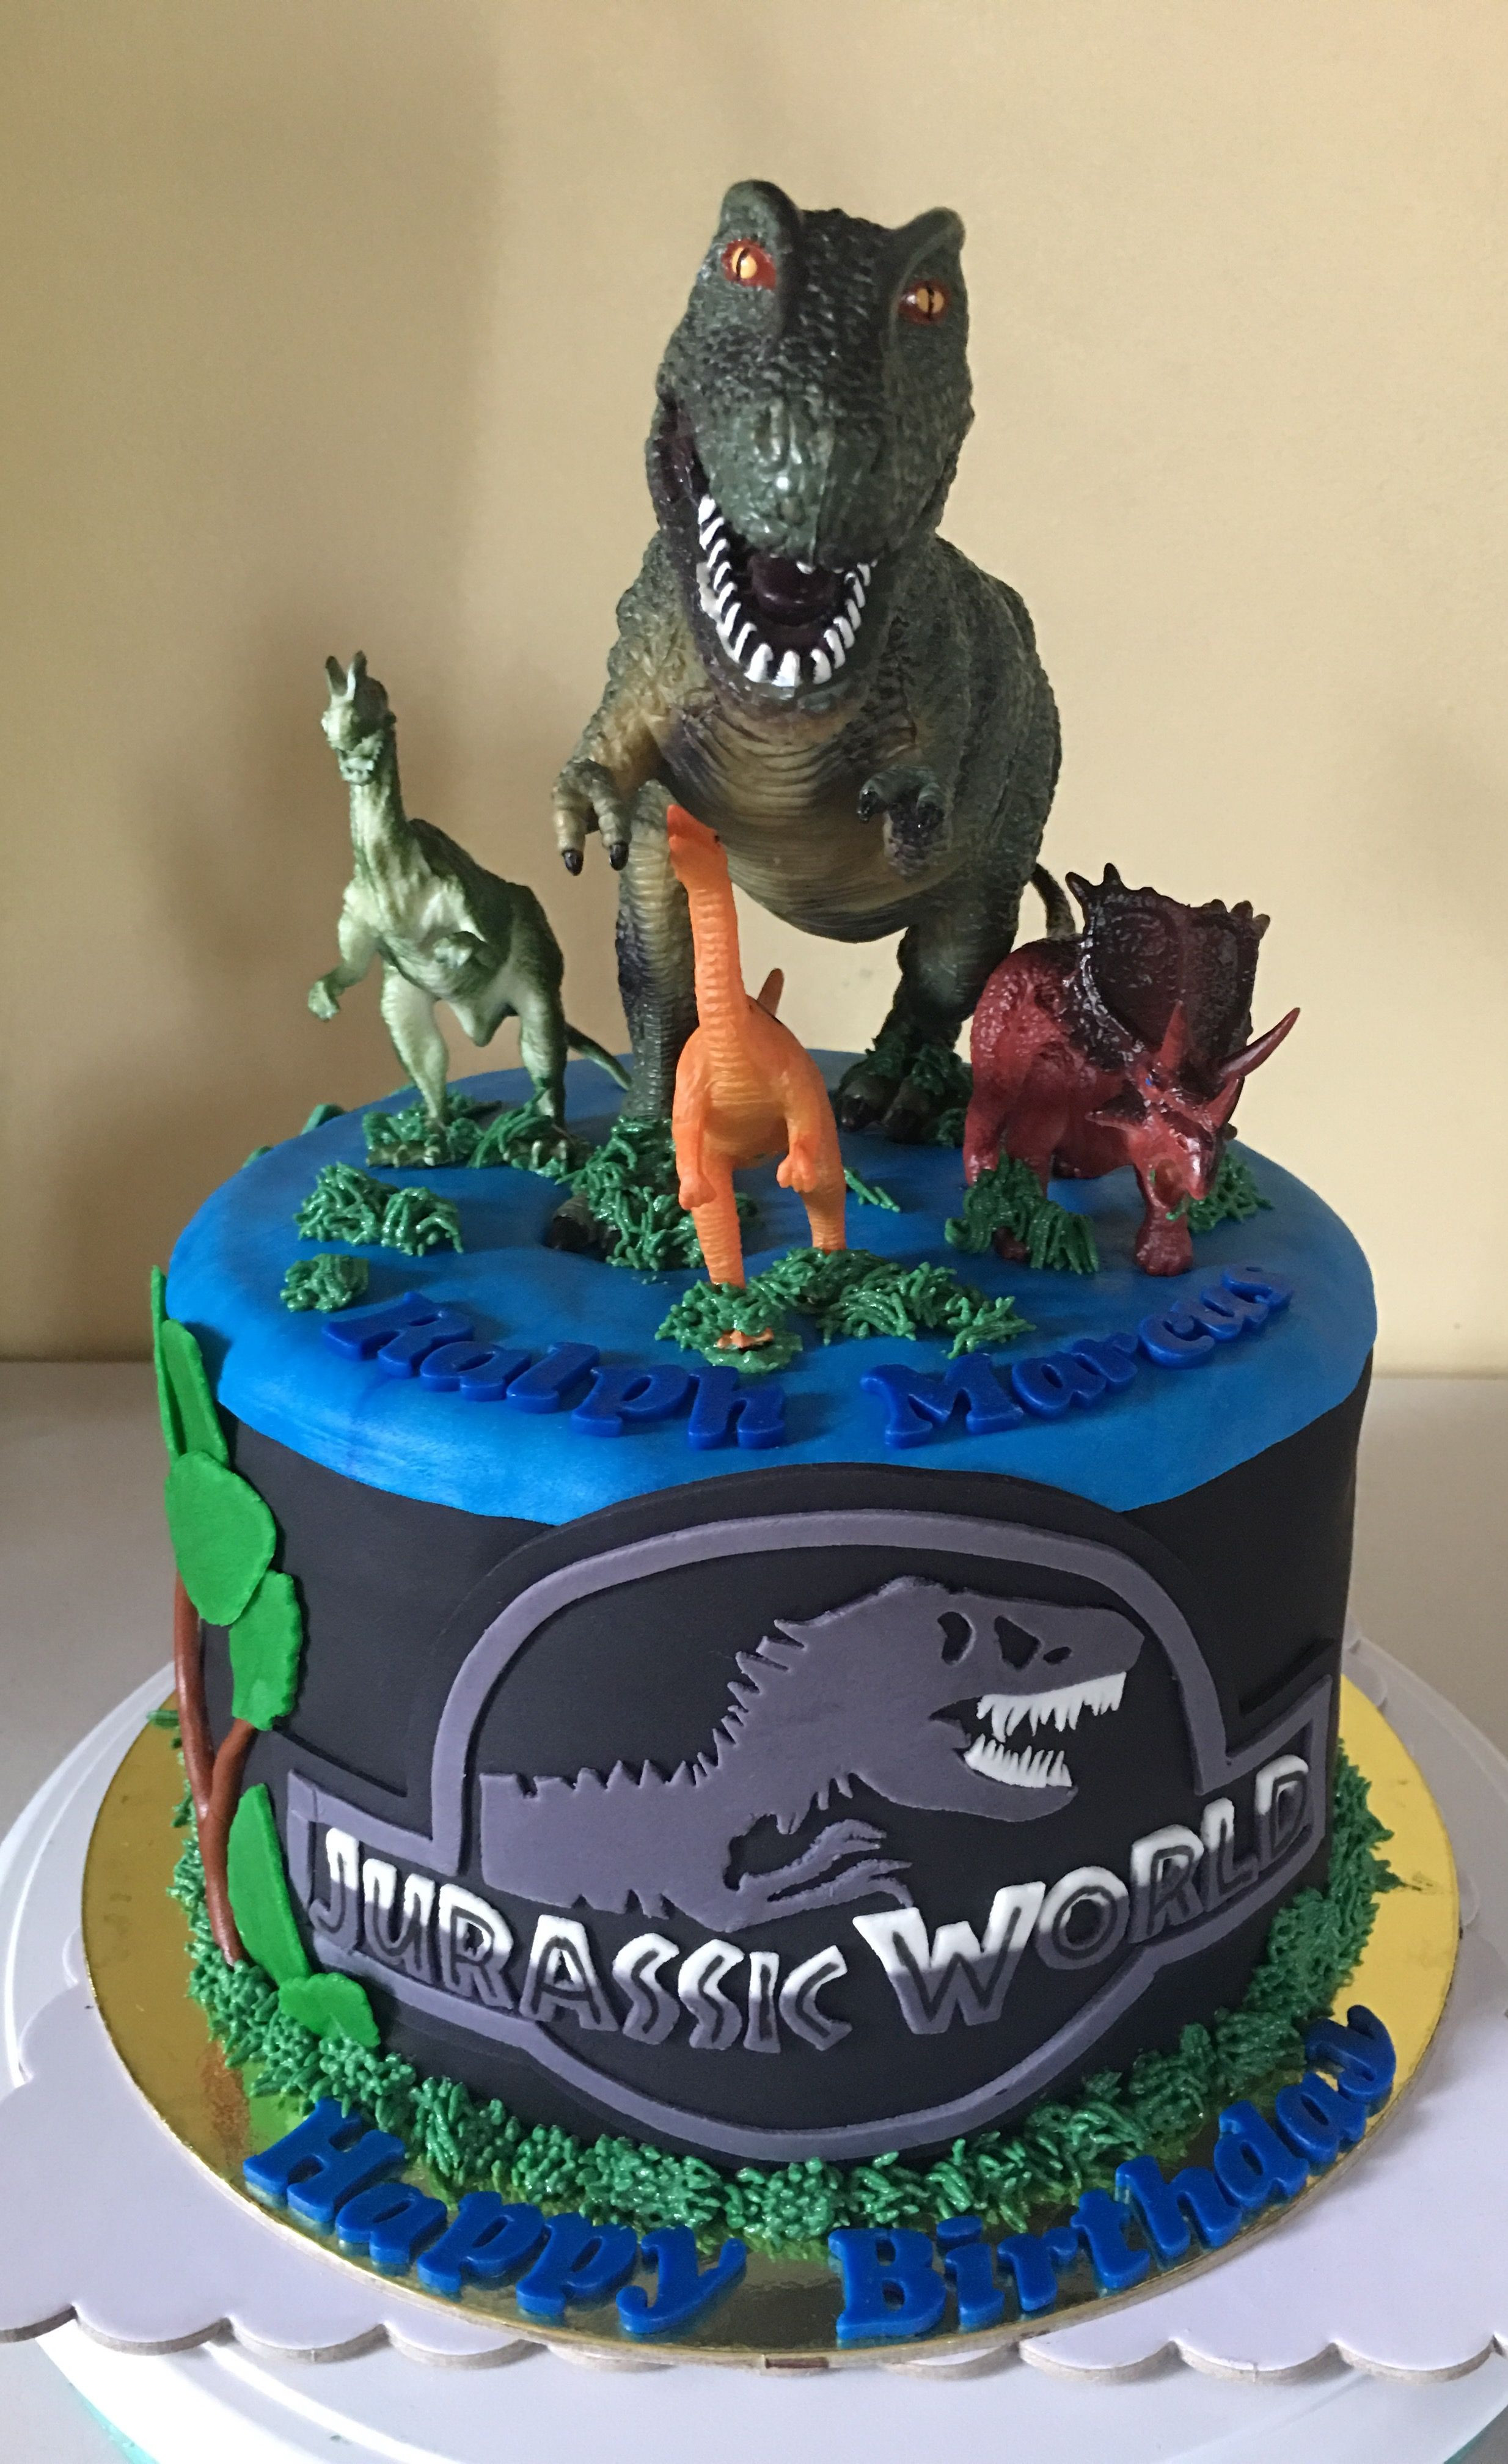 Best ideas about Jurassic World Birthday Cake . Save or Pin Jurassic World Cake Belle s Sweet Treats Now.